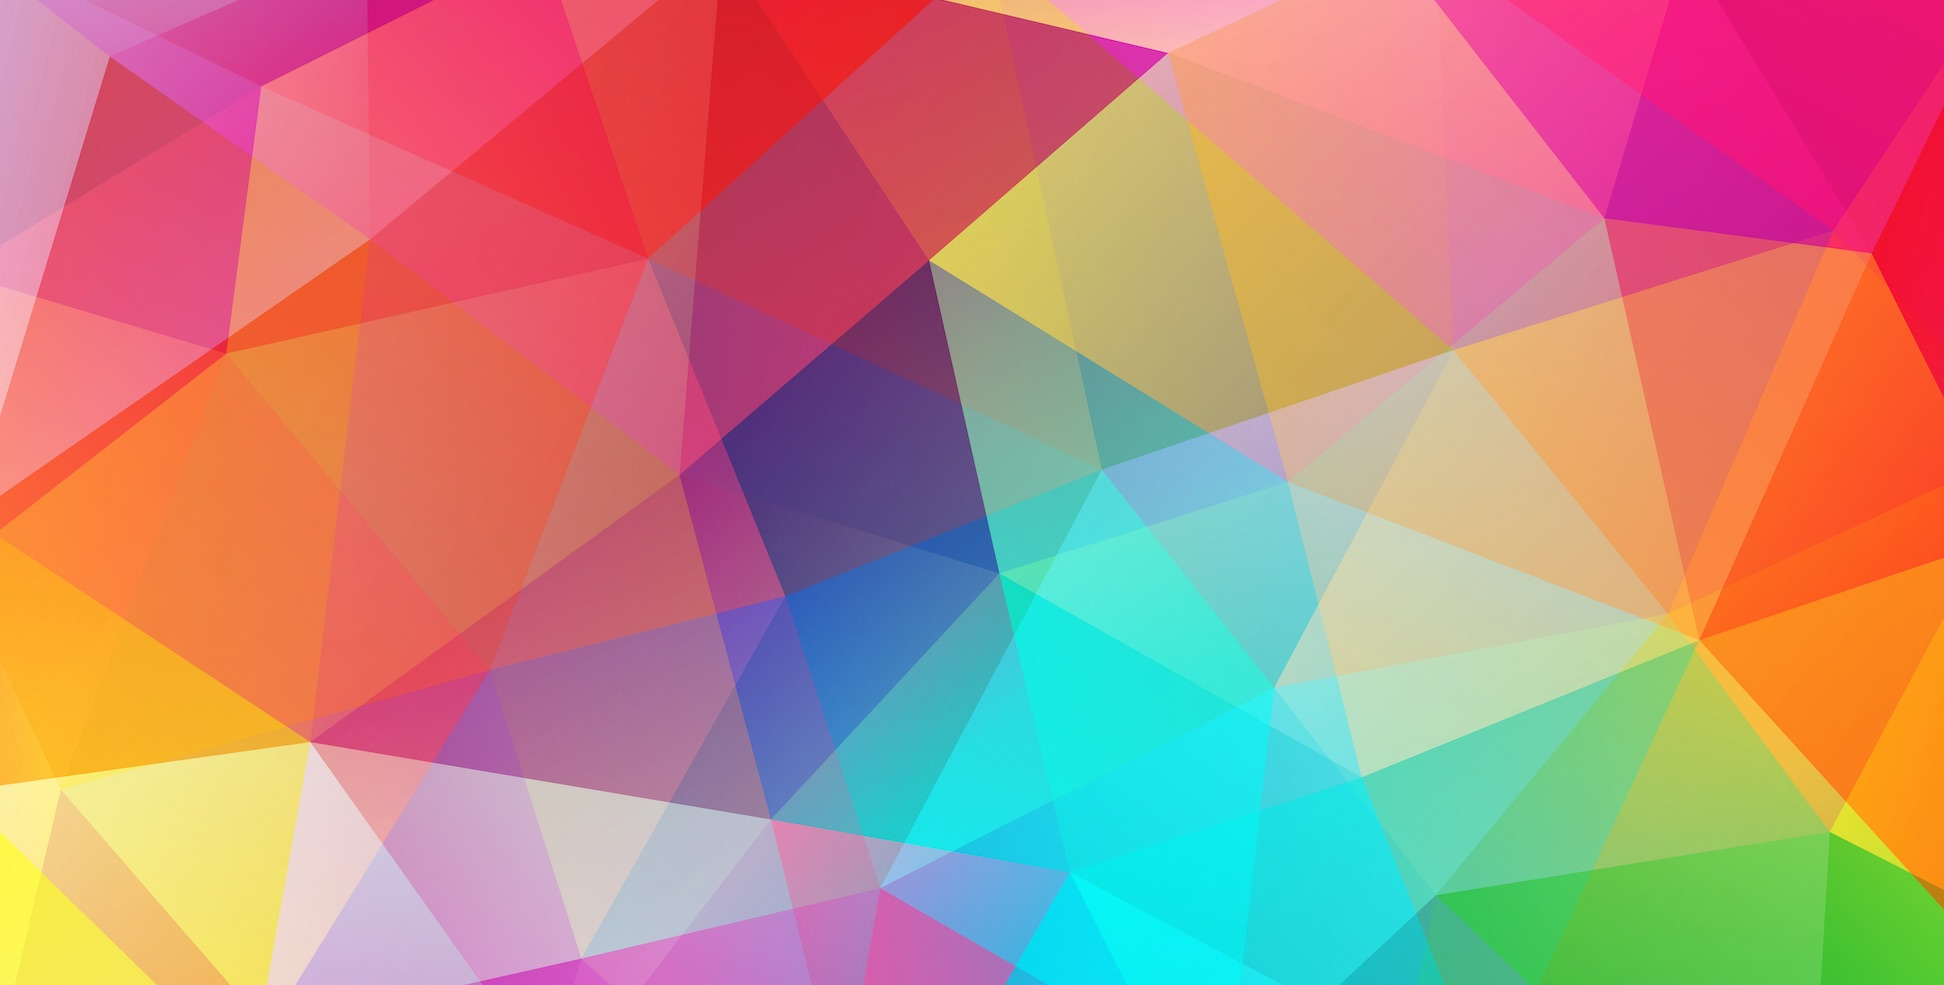 Web Design Color Theory: How To Create The Right Emotions With Color In Web Design